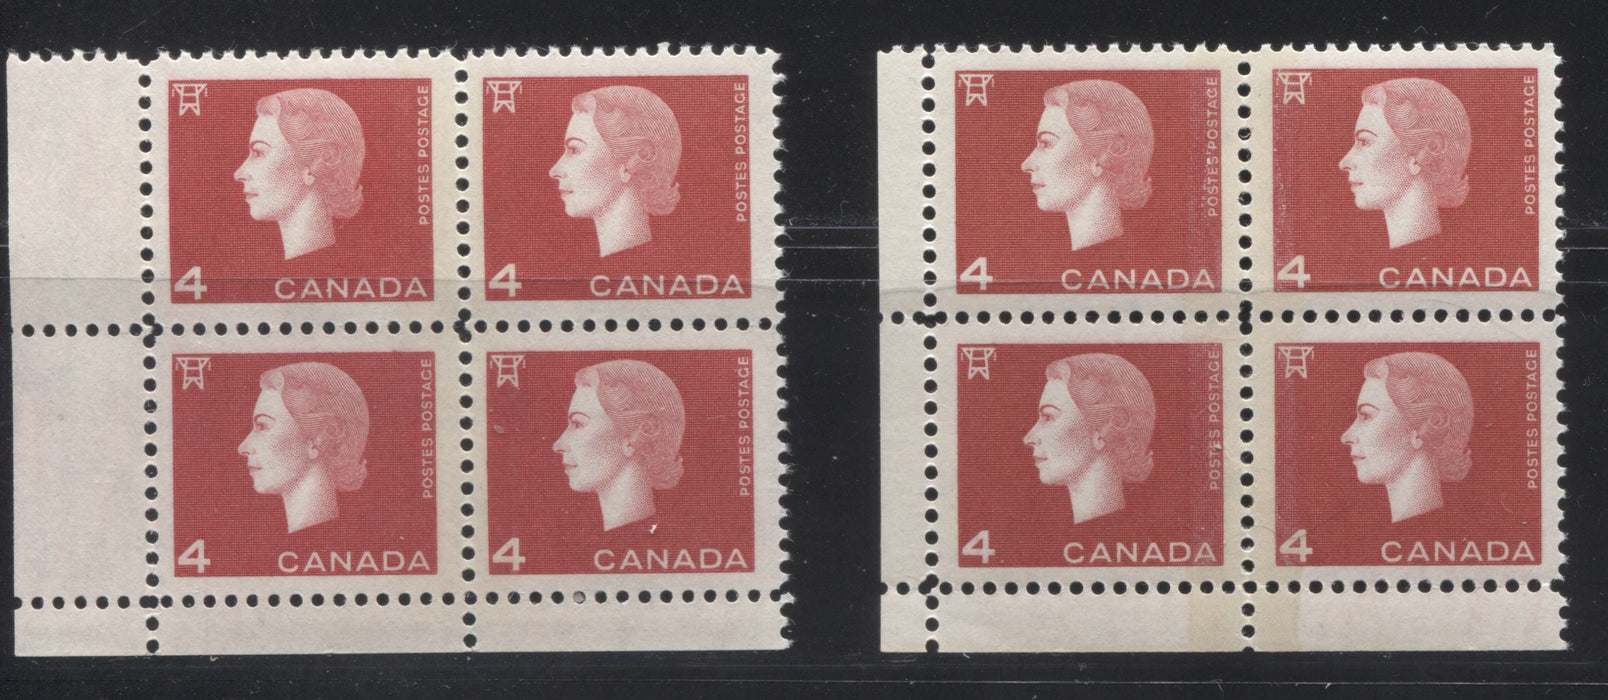 Canada #404x 4c Deep and Bright Red Queen Elizabeth II, 1962-1967 Cameo Issue, LL VFNH Winnipeg Tagged Field Stock Corner Blocks With 8 mm Split Bar and Different Selvedge Widths and Tagging Strengths